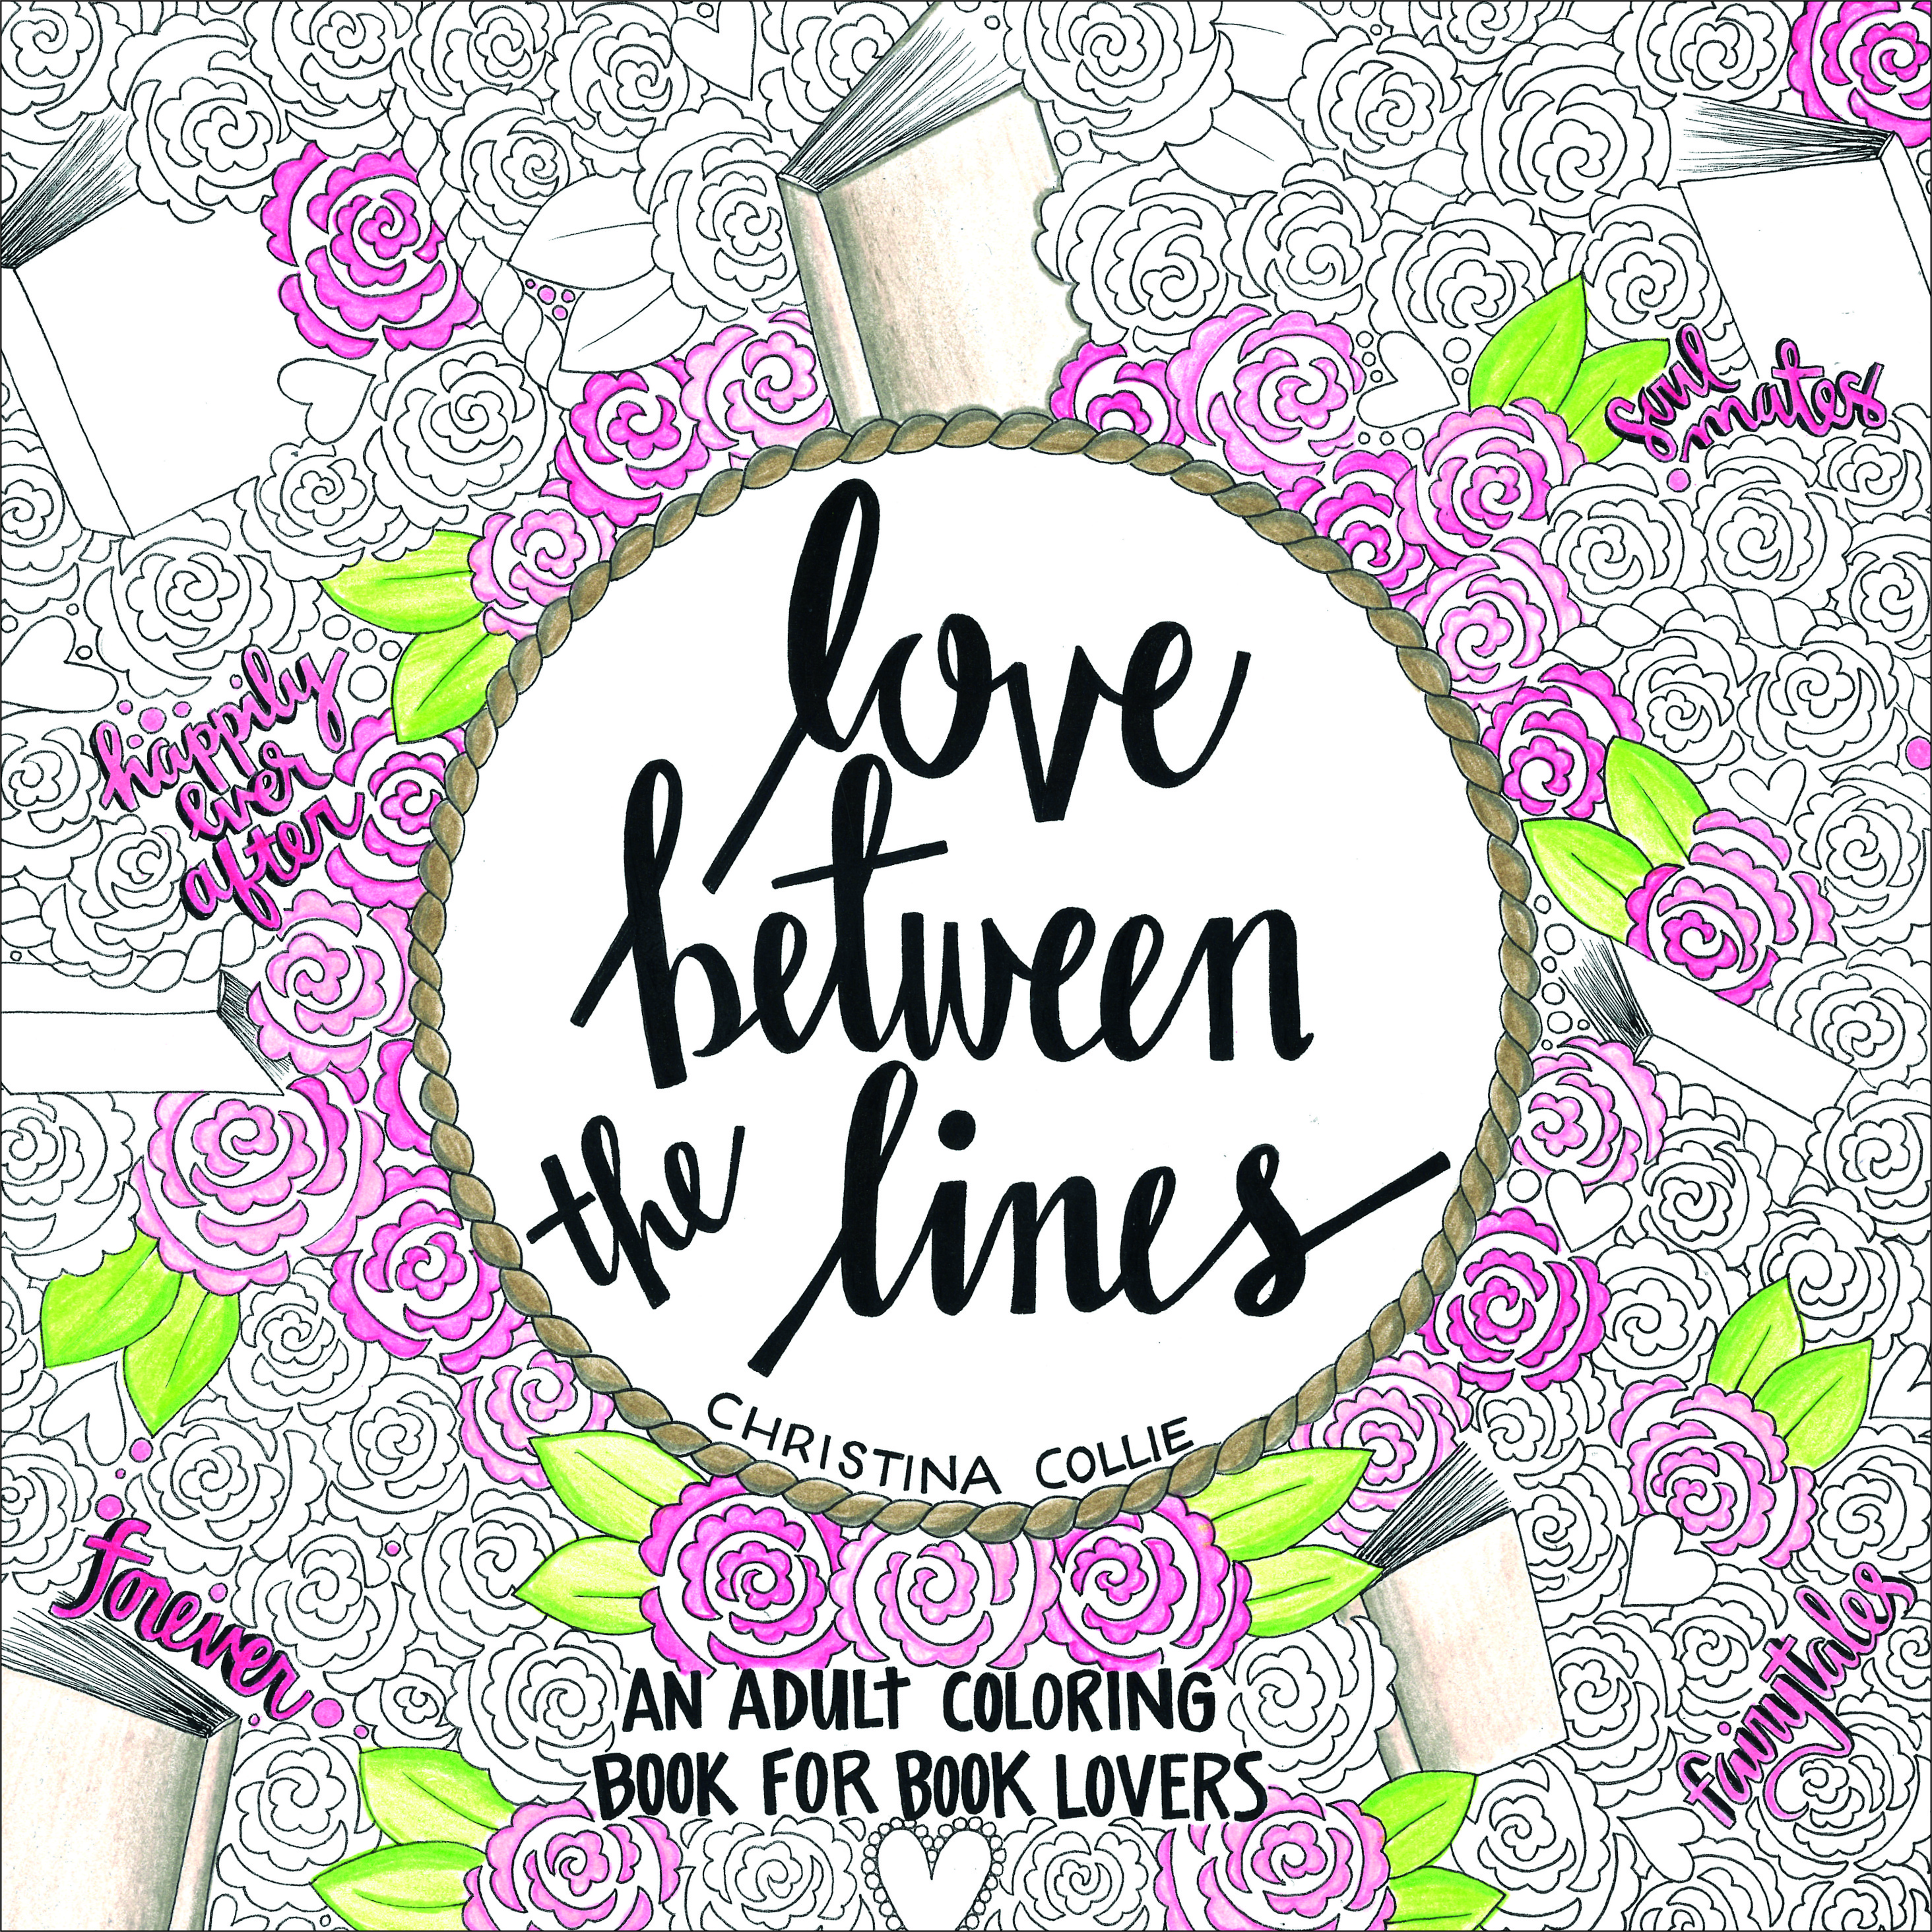 Love Between the Lines: An Adult Coloring Book for Book Lovers by Christina Collie